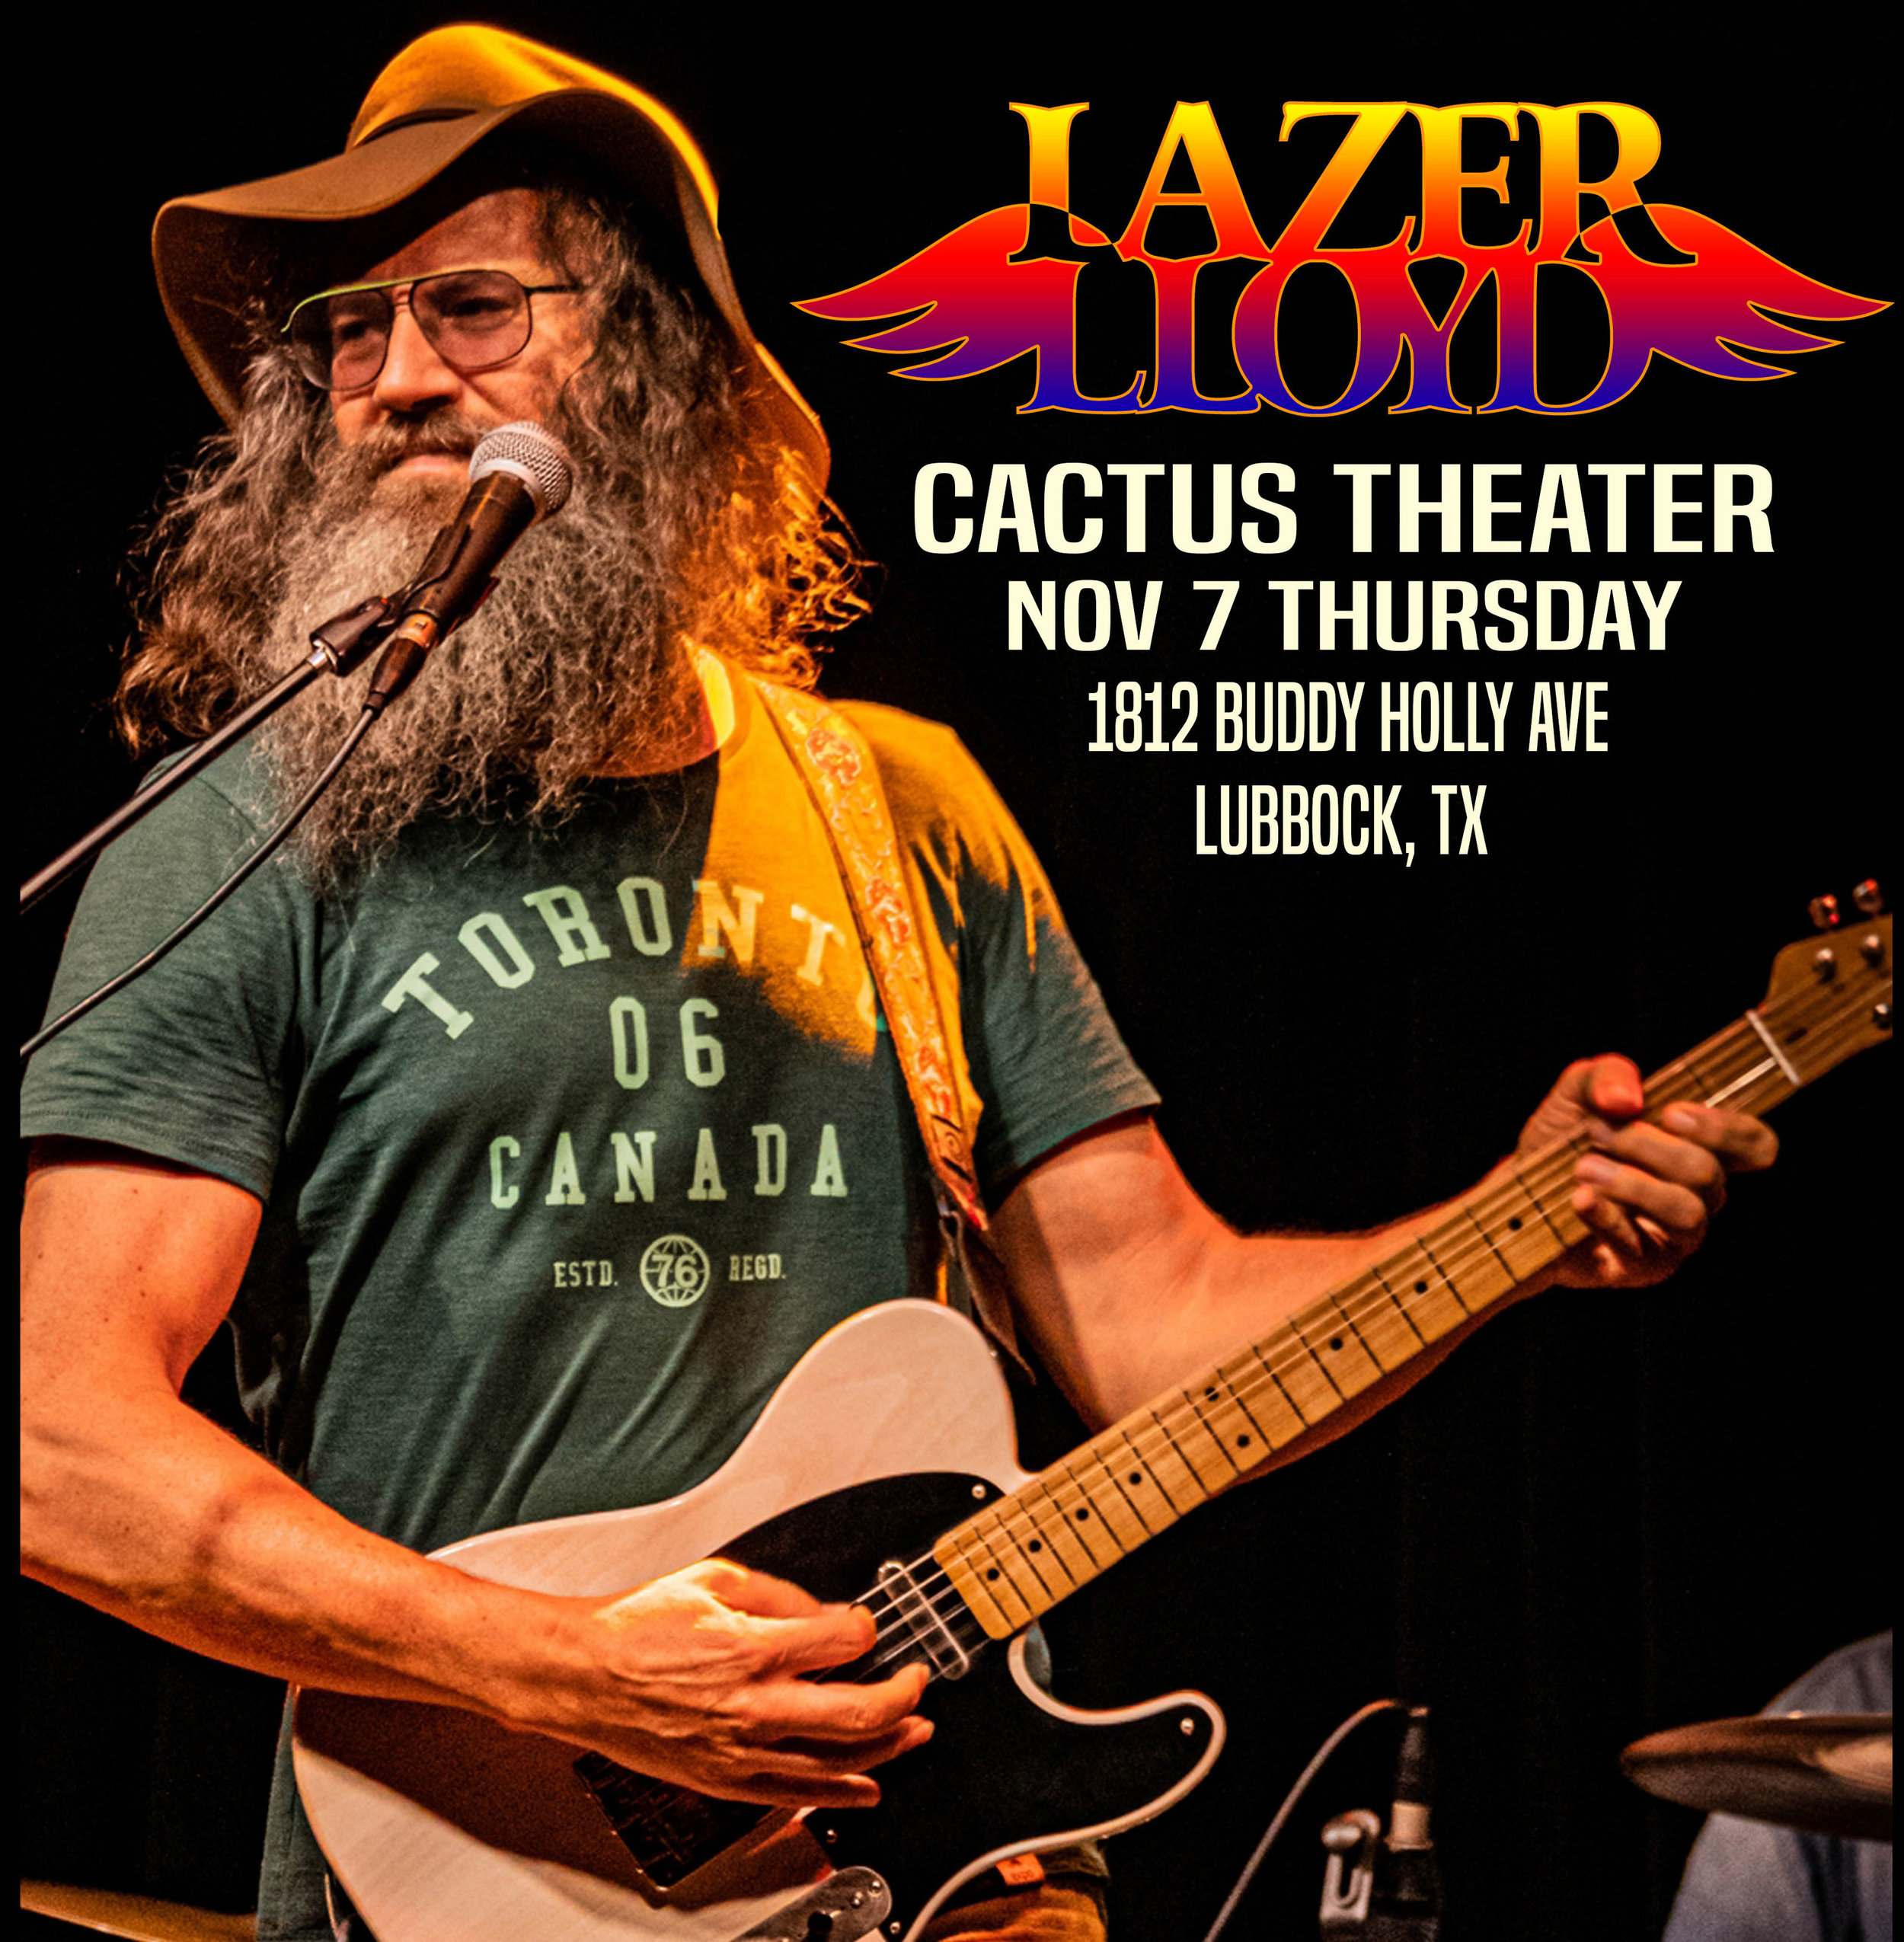 Championing a variety of musical styles with cross country tours to deliver his original music, Lazer Lloyd makes his debut at the Cactus Theater on Thursday, Nov. 7.